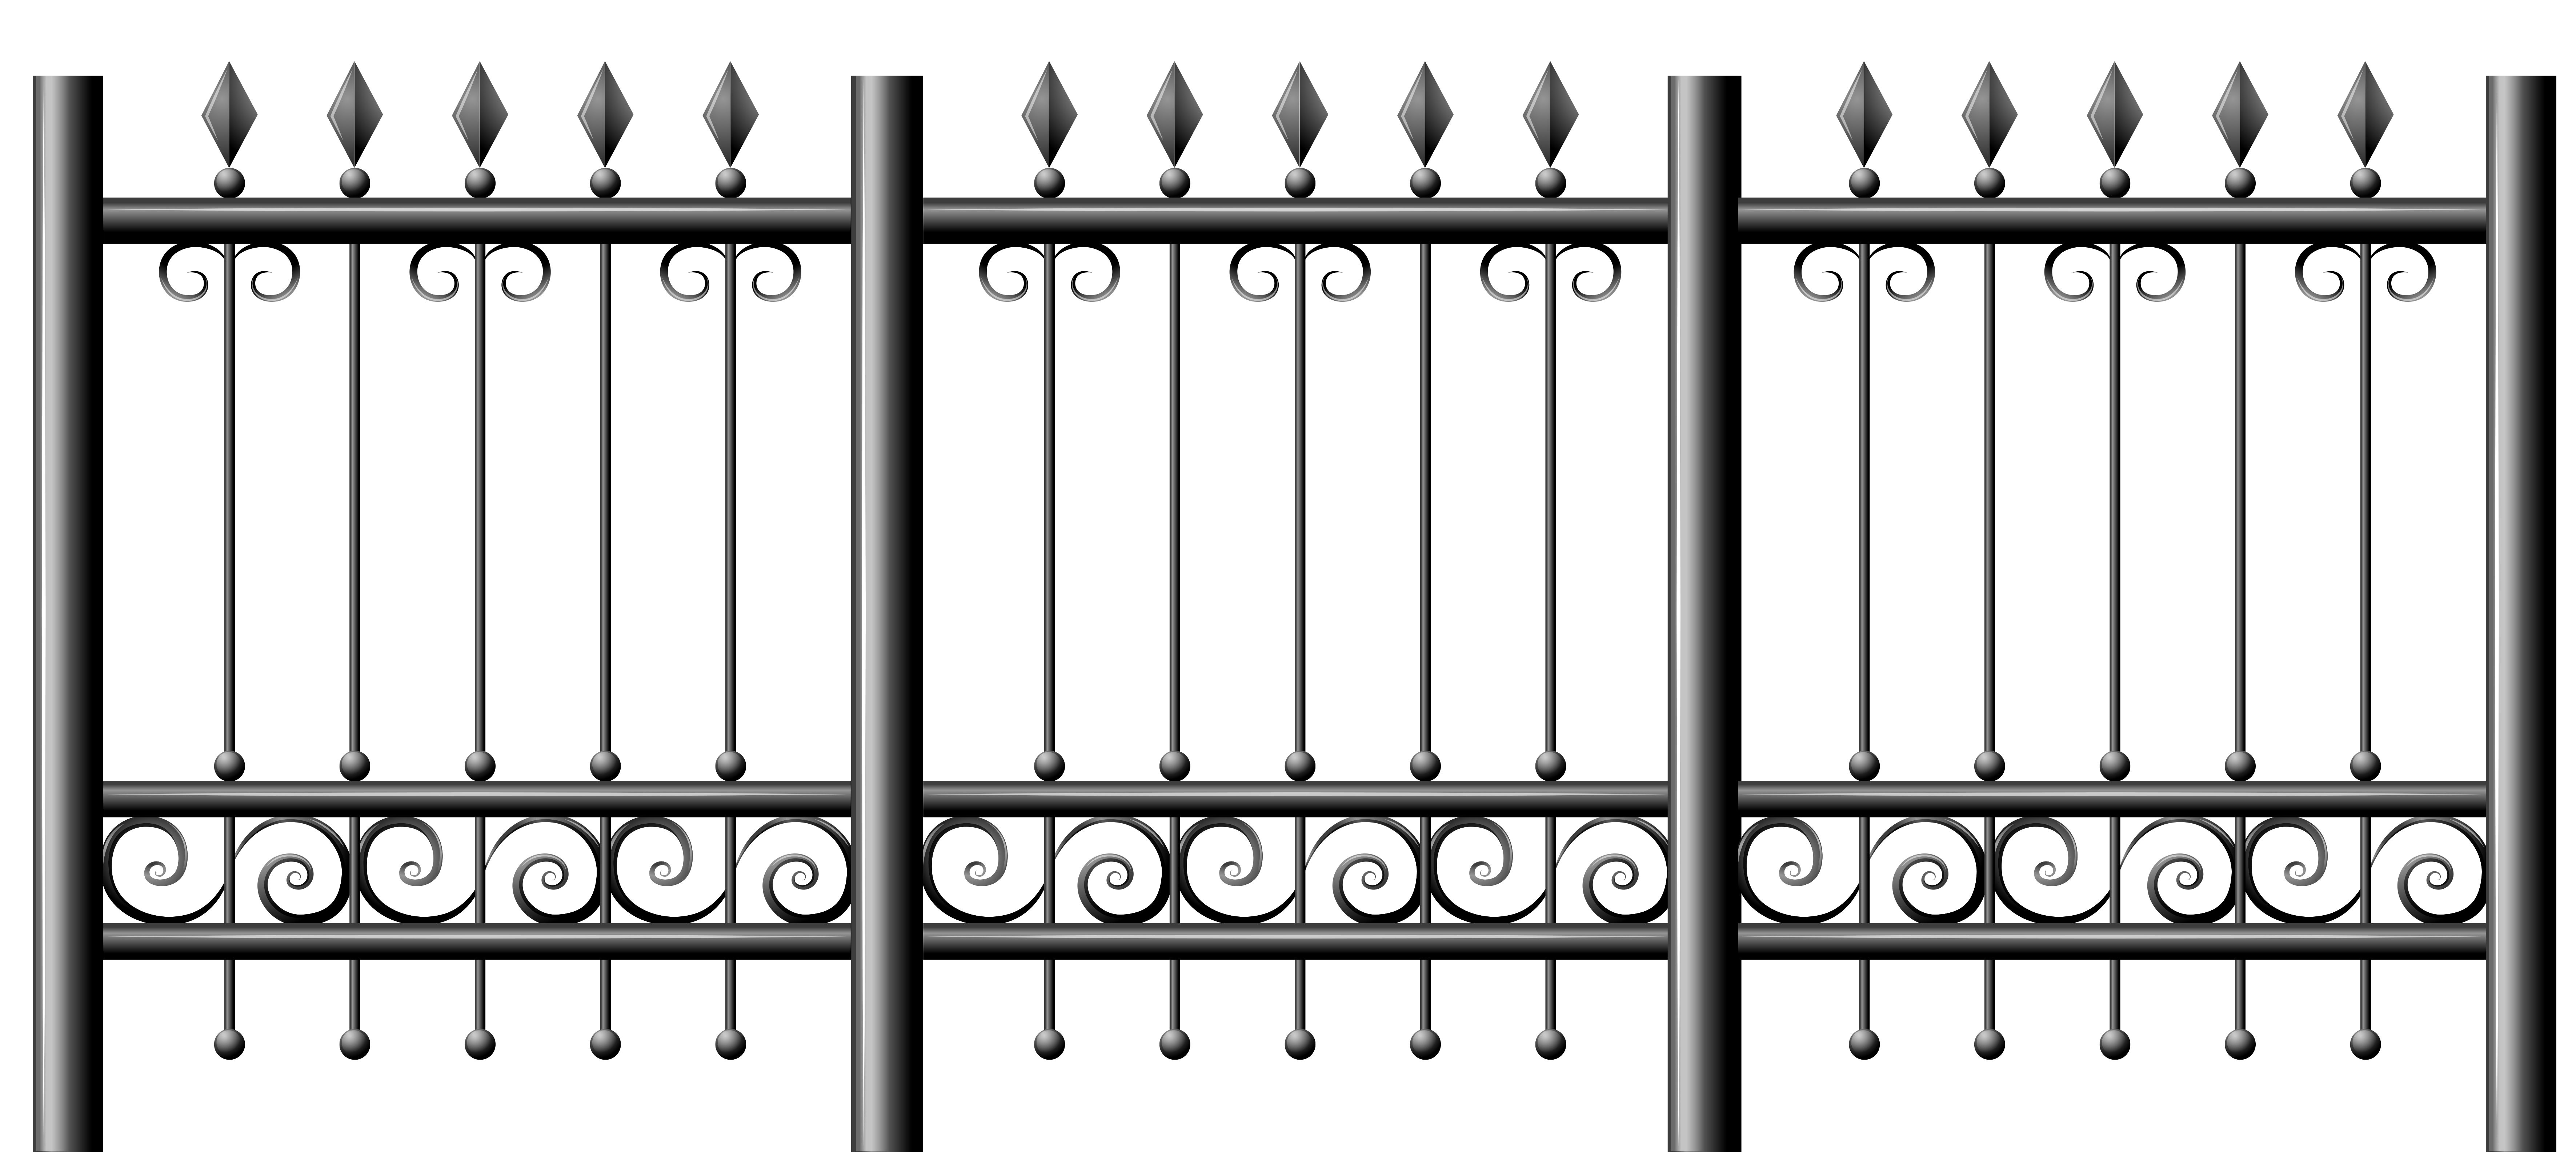 Hand angleplay basketball clipart svg black and white download Transparent Iron Fence PNG Clipart | Gallery Yopriceville - High ... svg black and white download